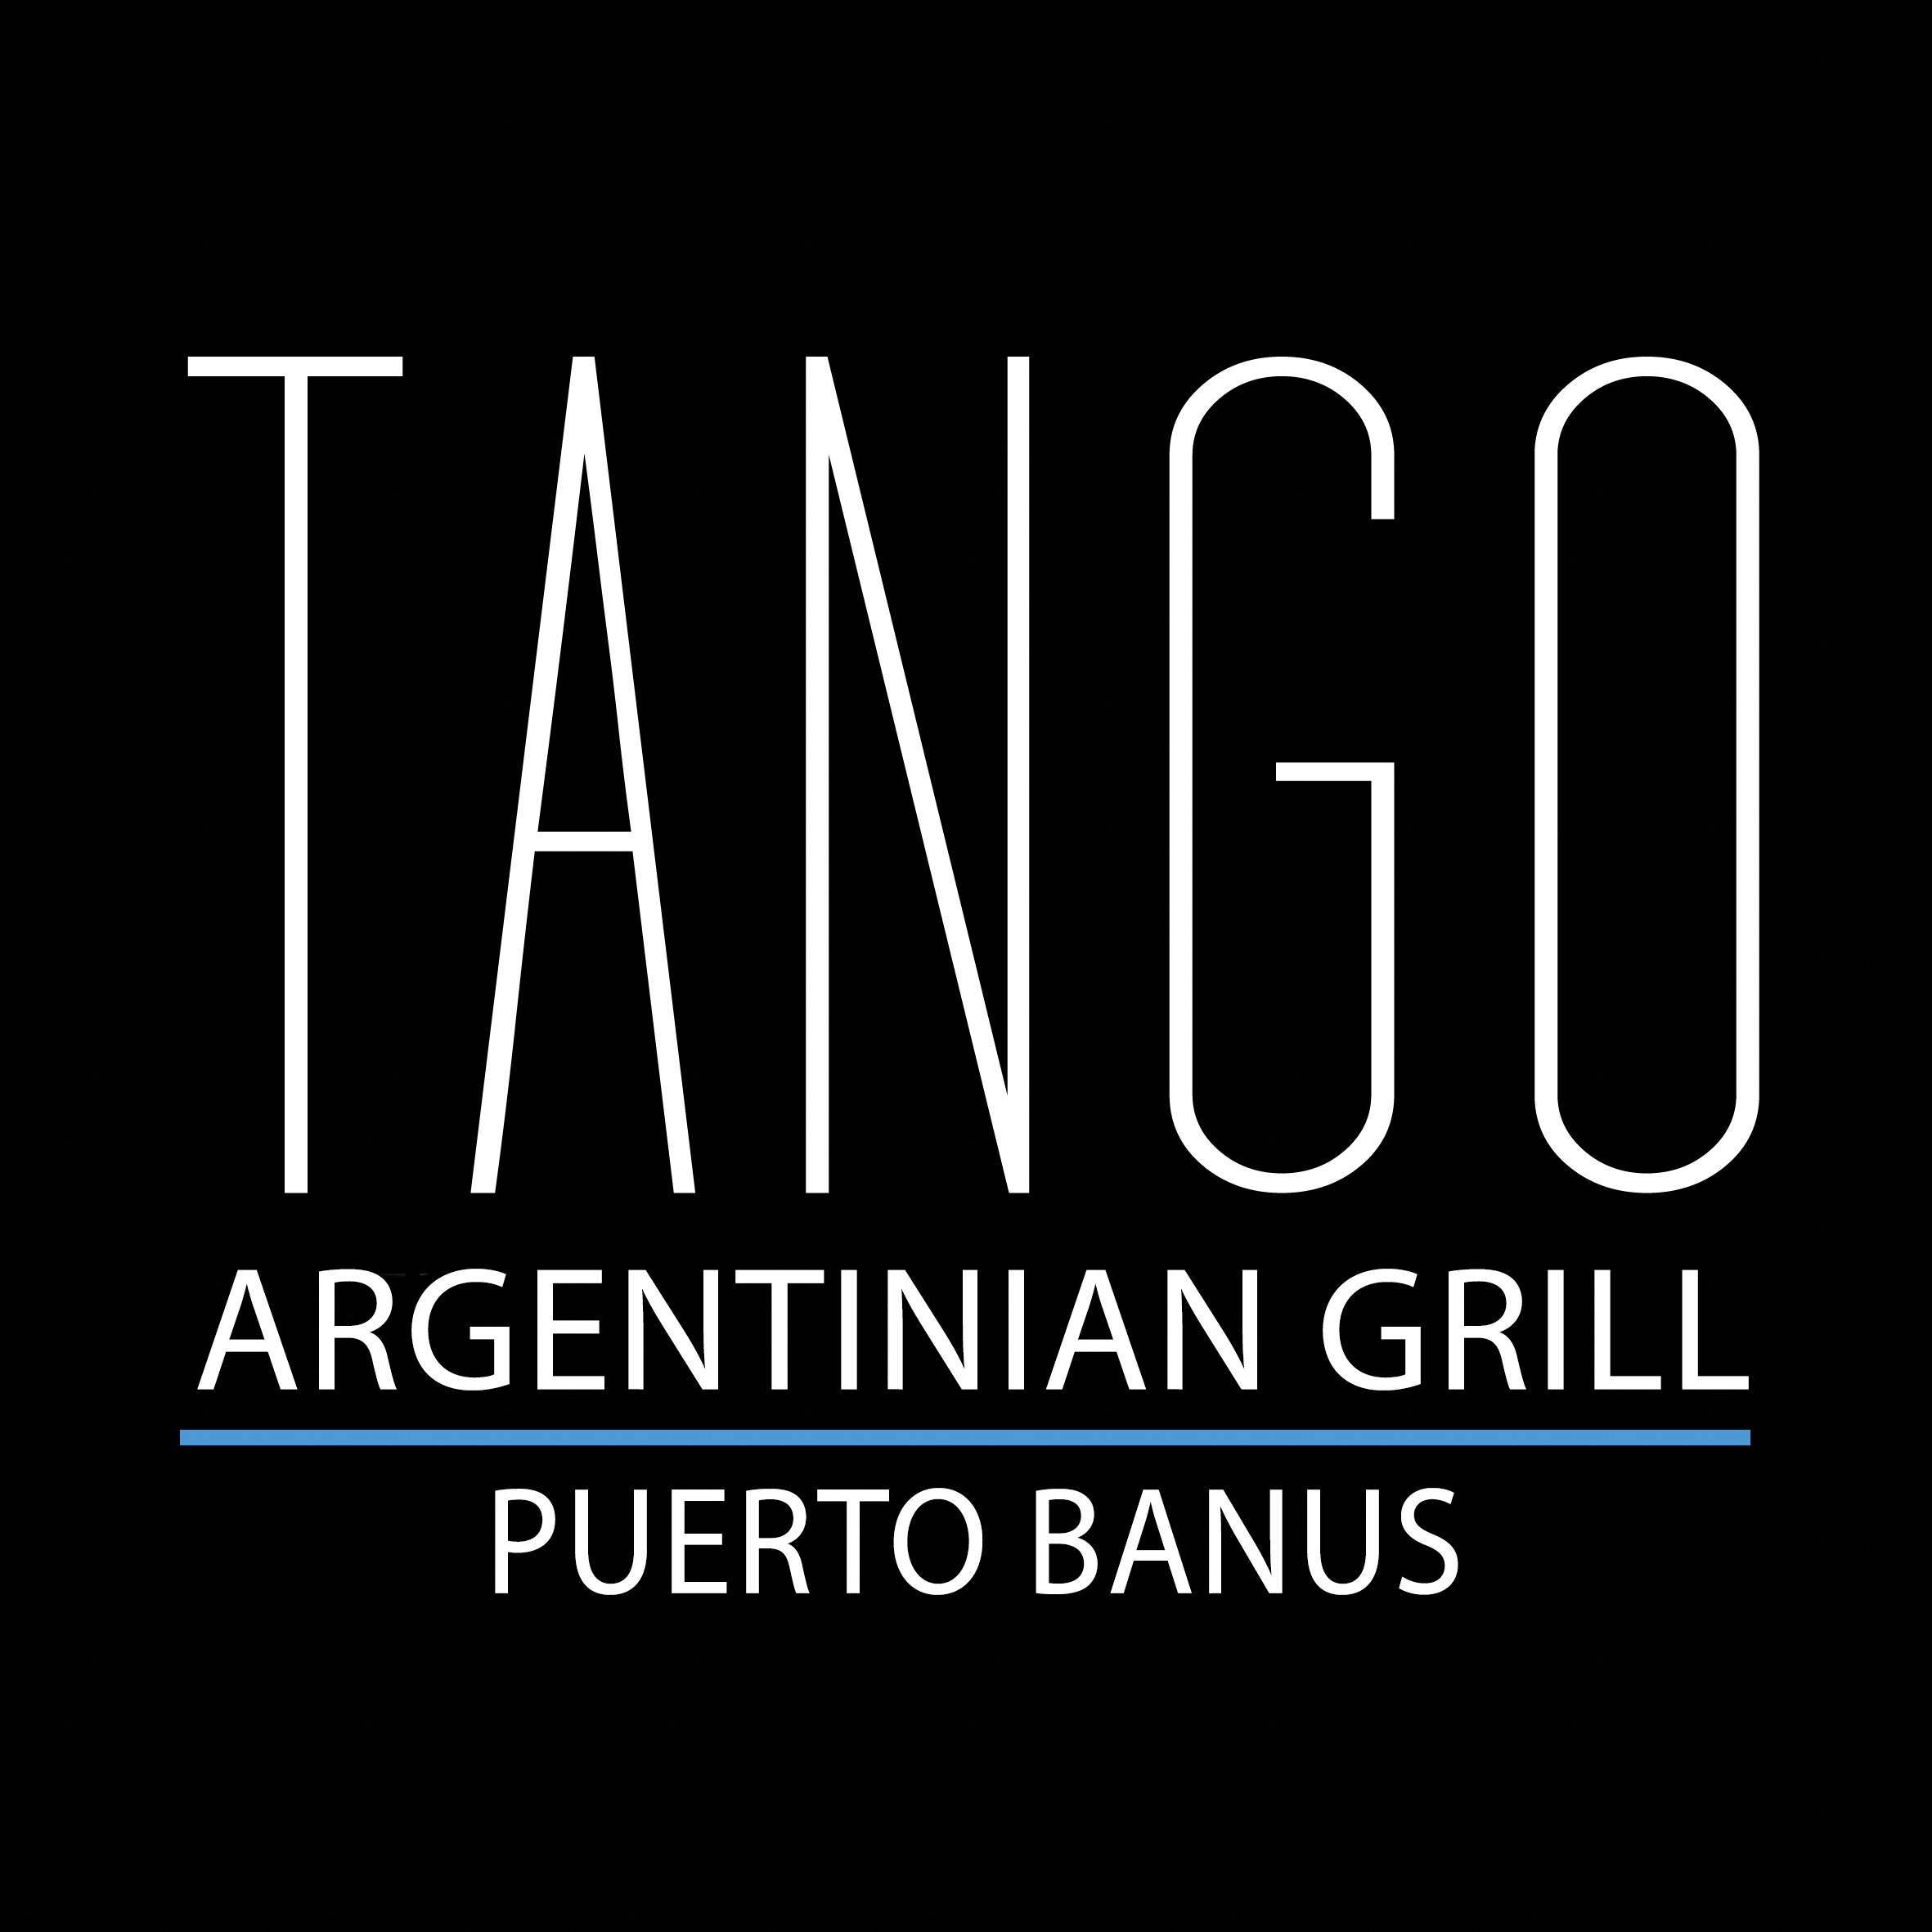 Tango Restaurante Puerto Banus - Argentinian Meat Restaurant & International Cuisine, Argentinian Grill  - Steakhouse - Marbella - Spain